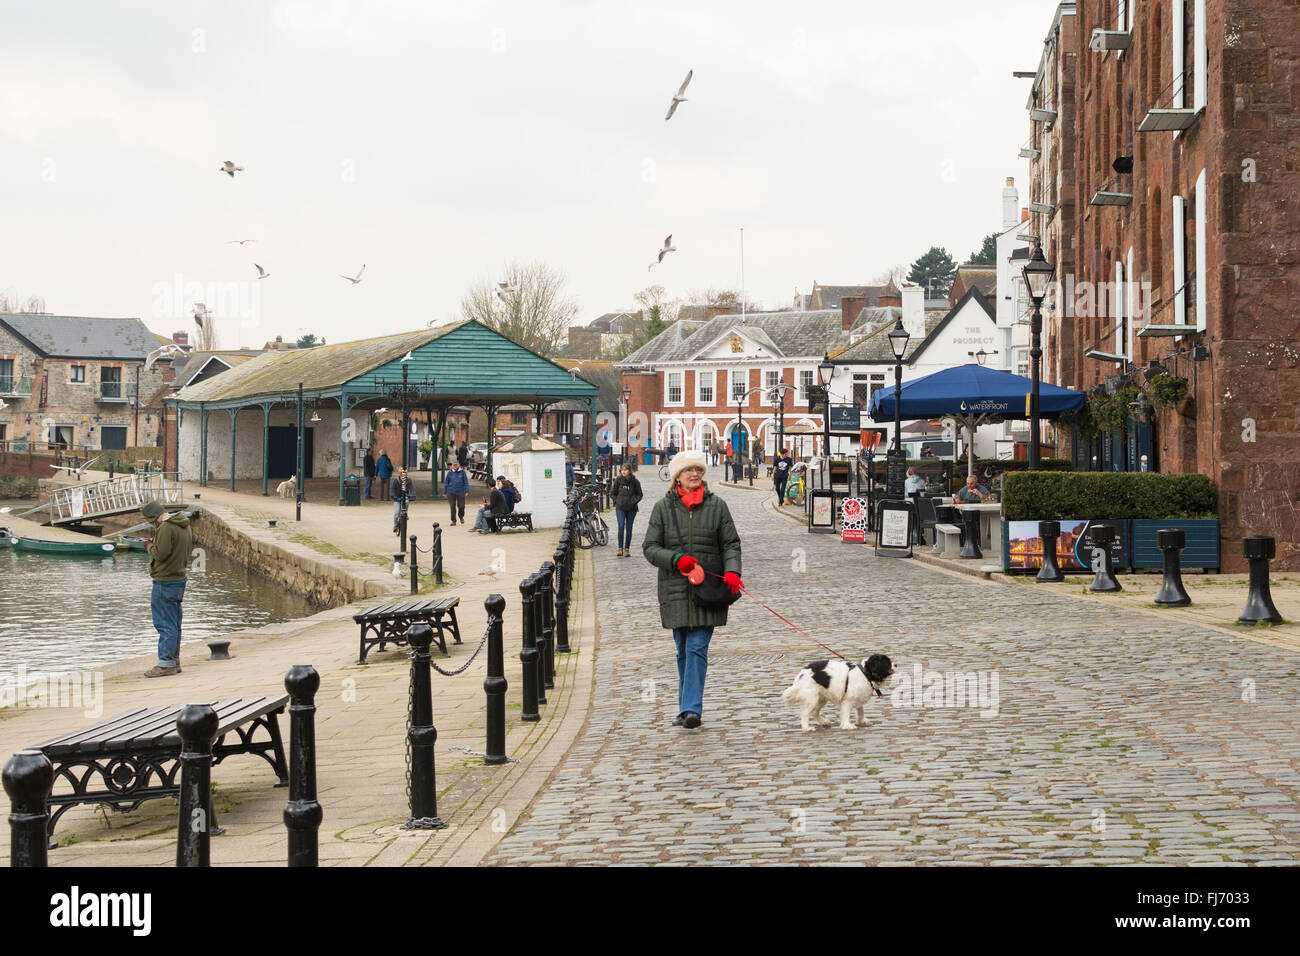 Exeter Quayside - a middle aged woman walking her dog along the side of the River Exe in winter - Stock Image